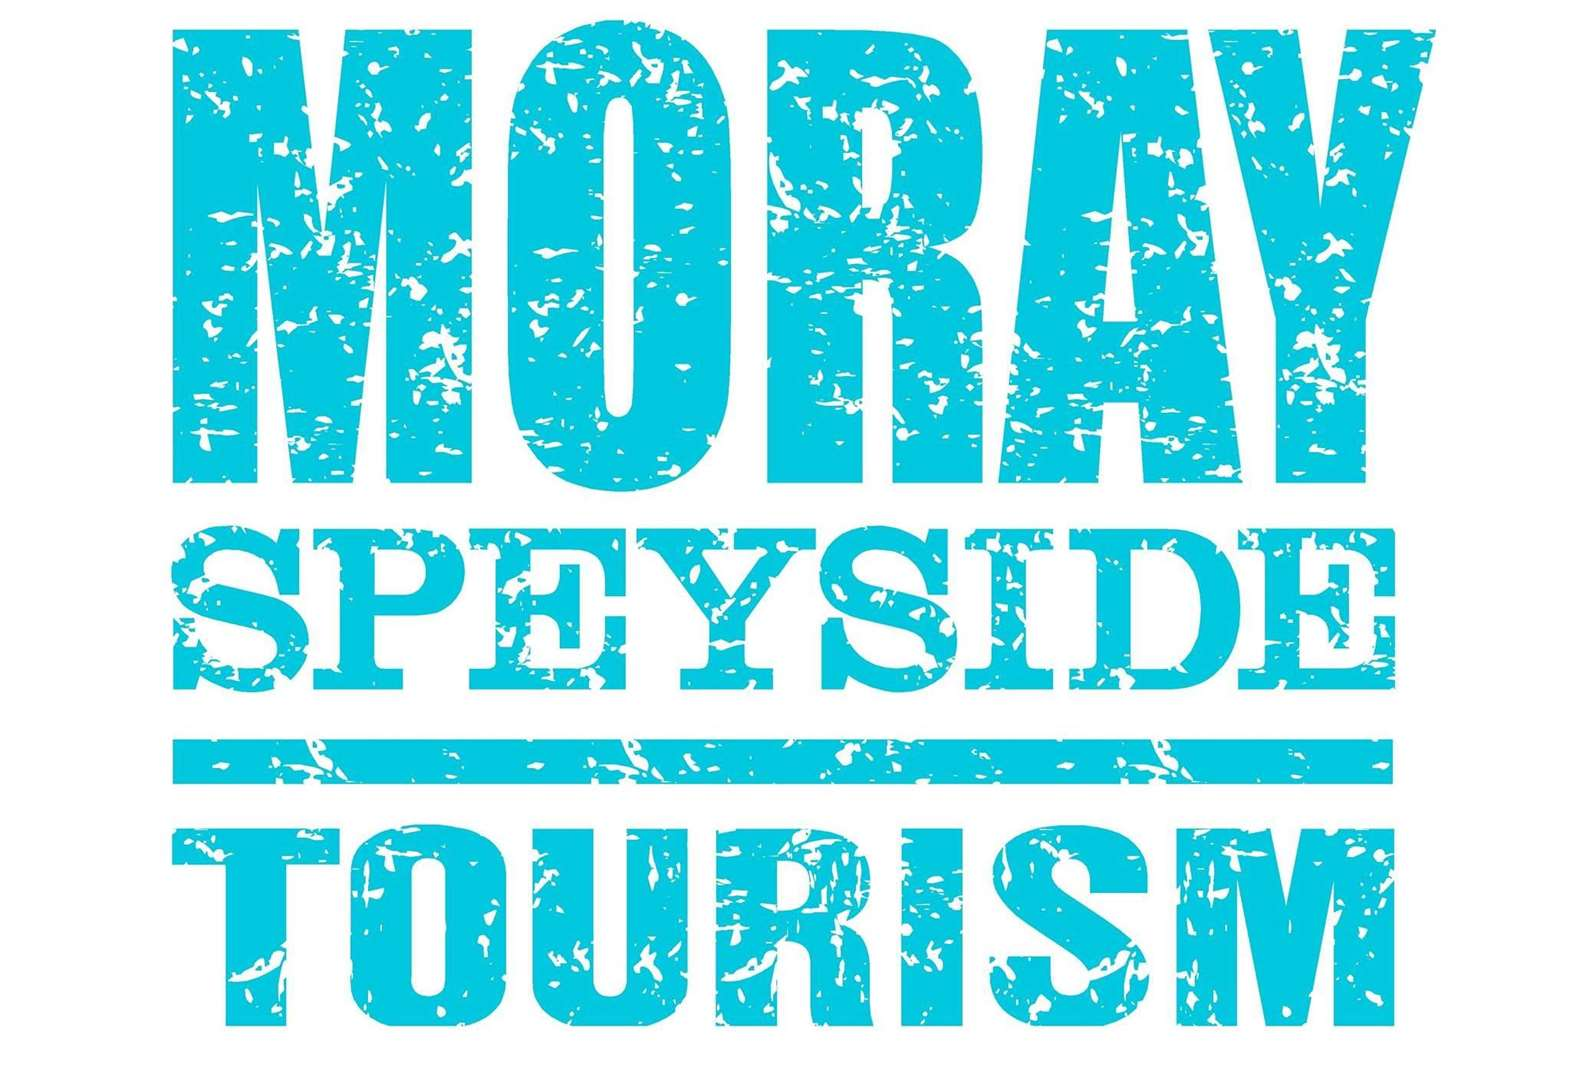 Plans for Moray Tourism BID move forward